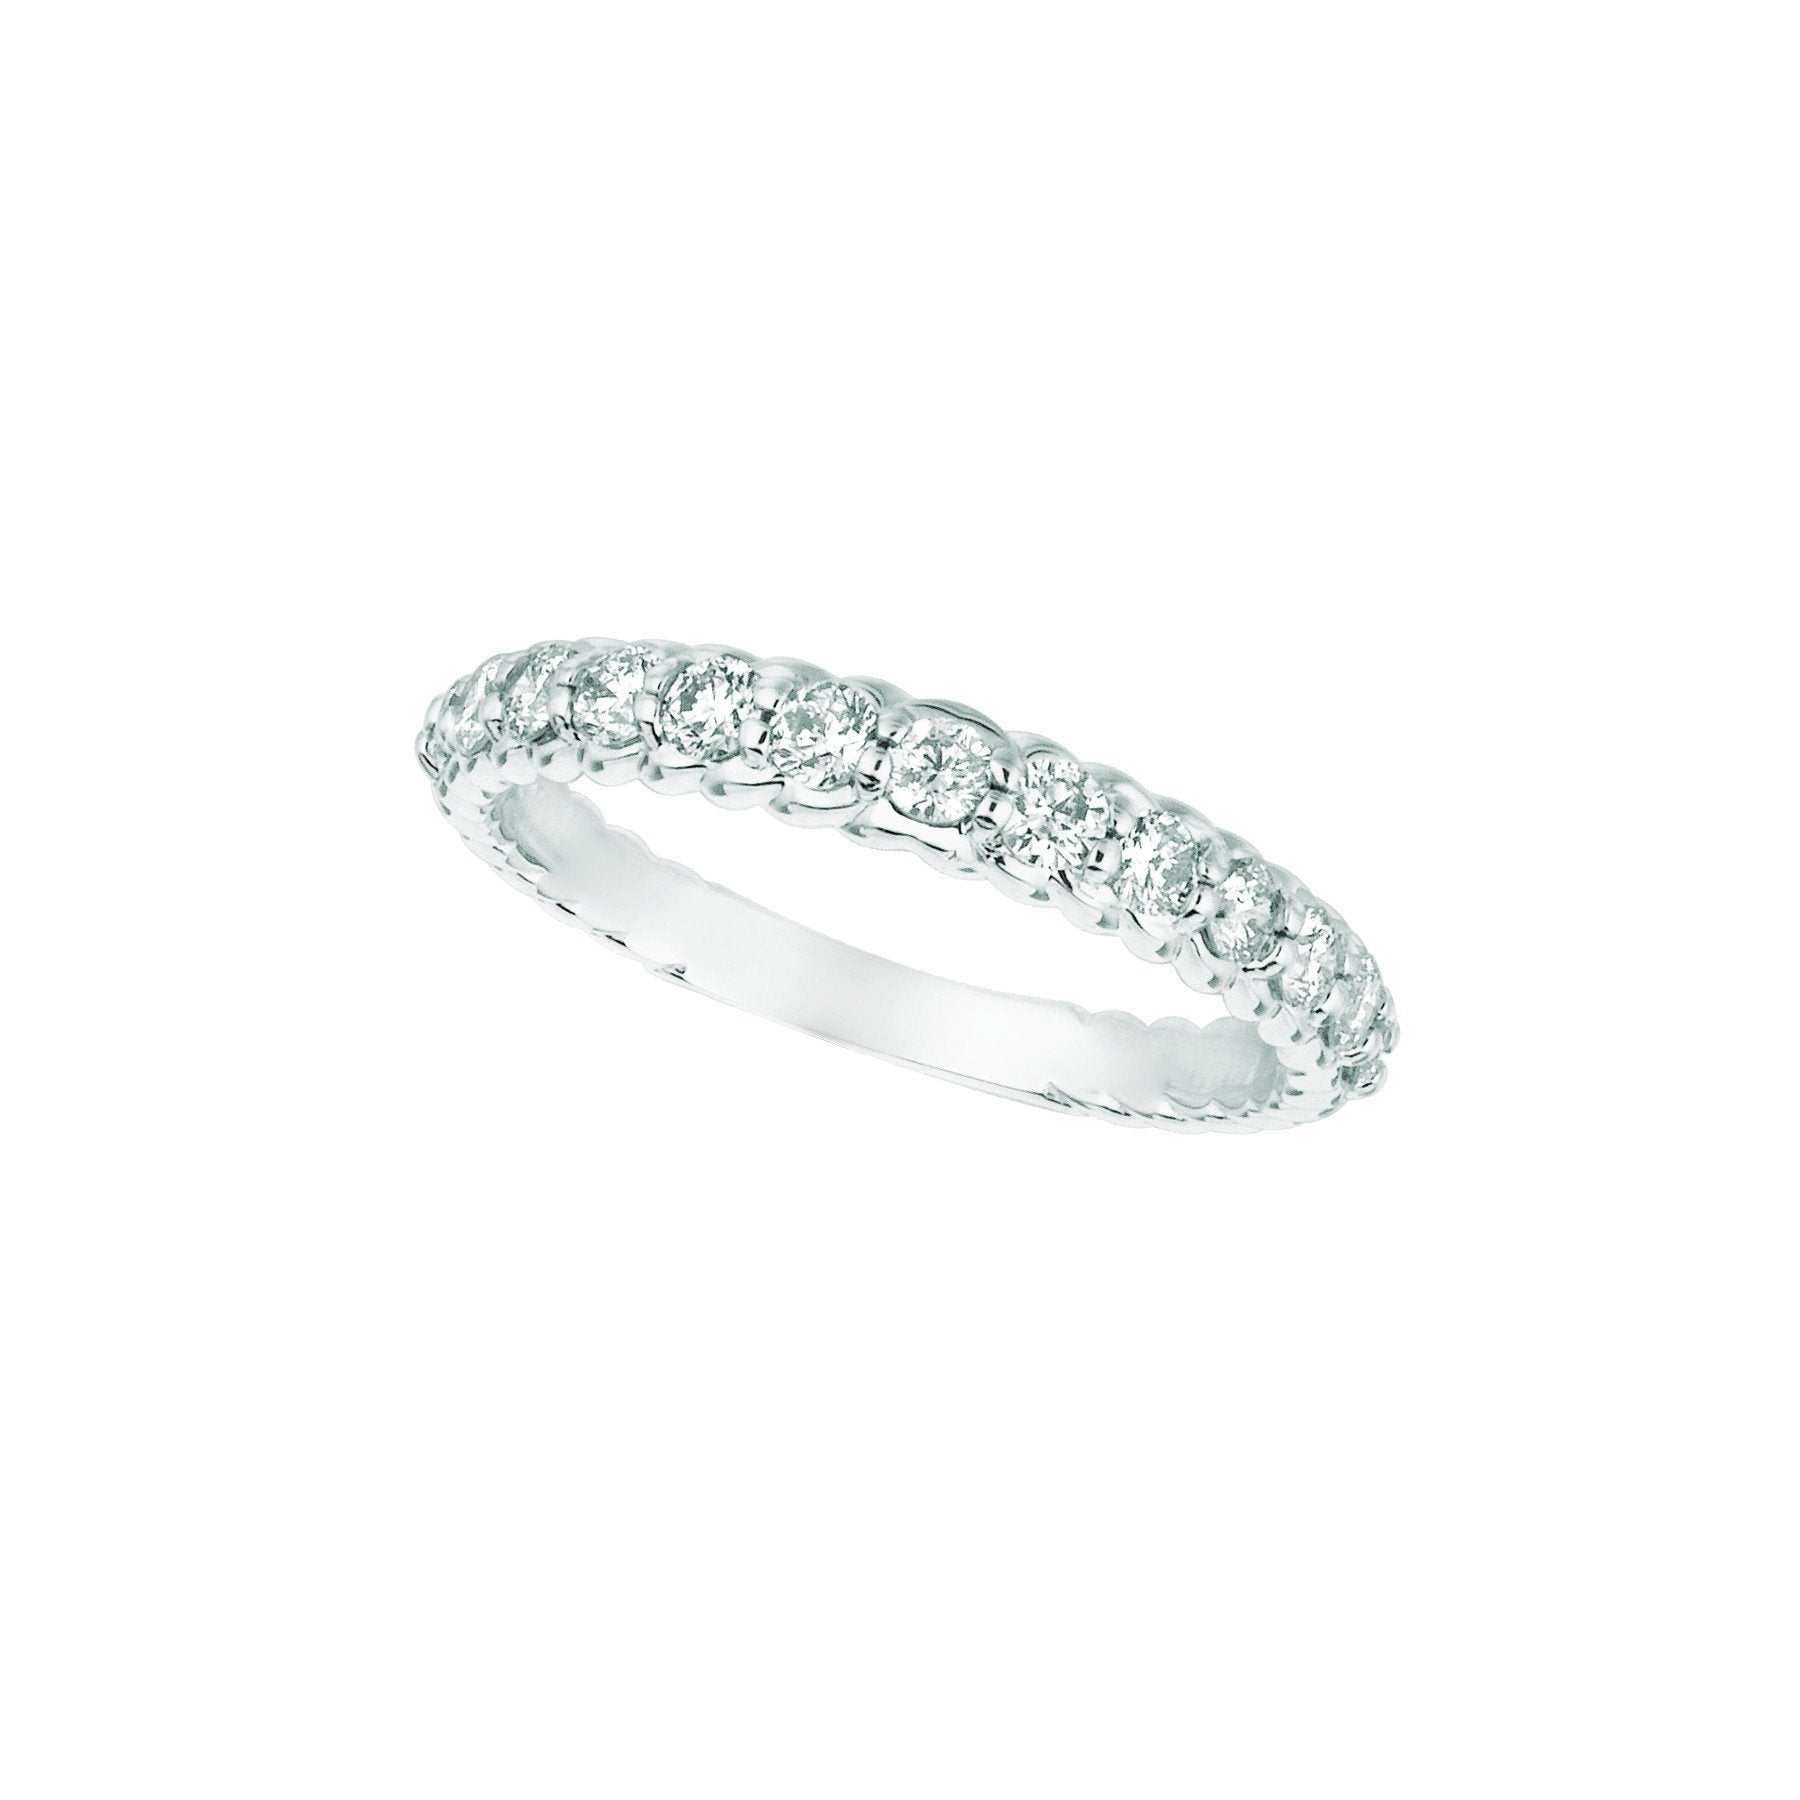 Diamond Half Eternity Band Ring 0.64 Carats 14K White Pave Half Eternity Band